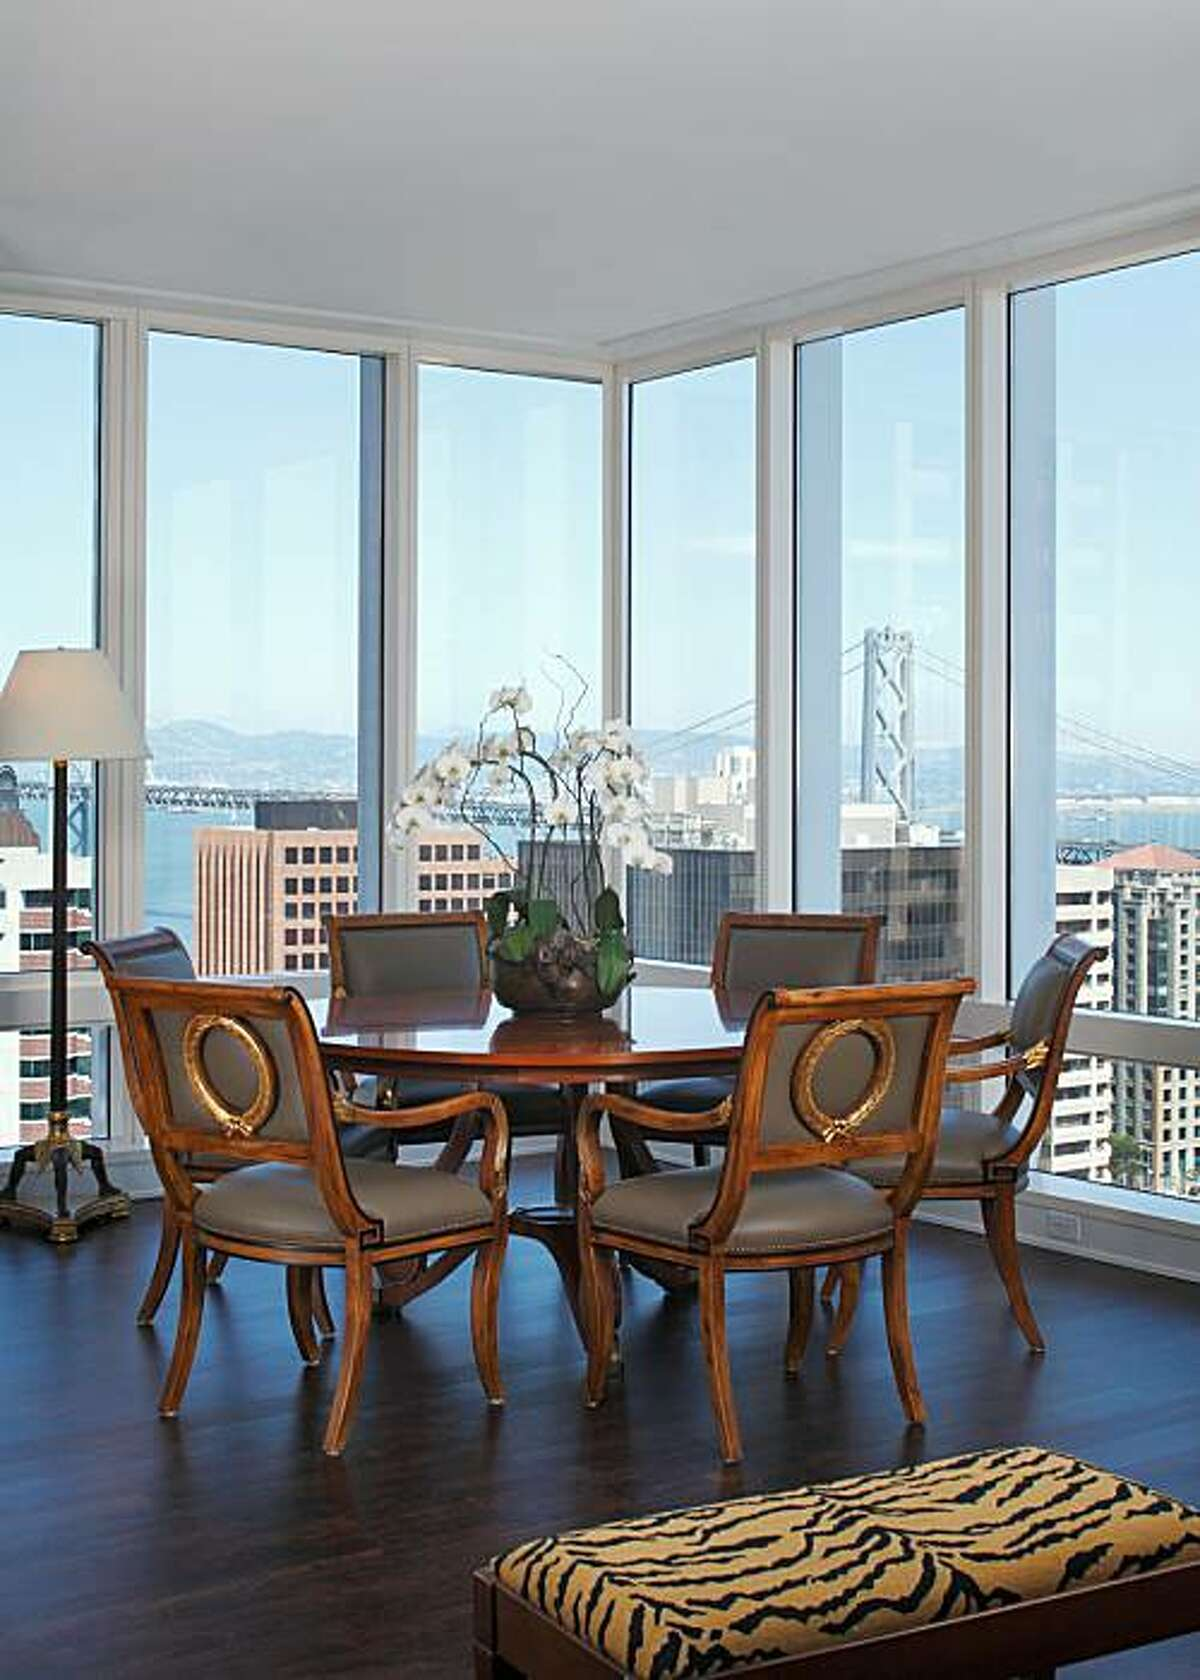 Stephen and Pamela Mittel's dining room with floor-to-ceiling windows.